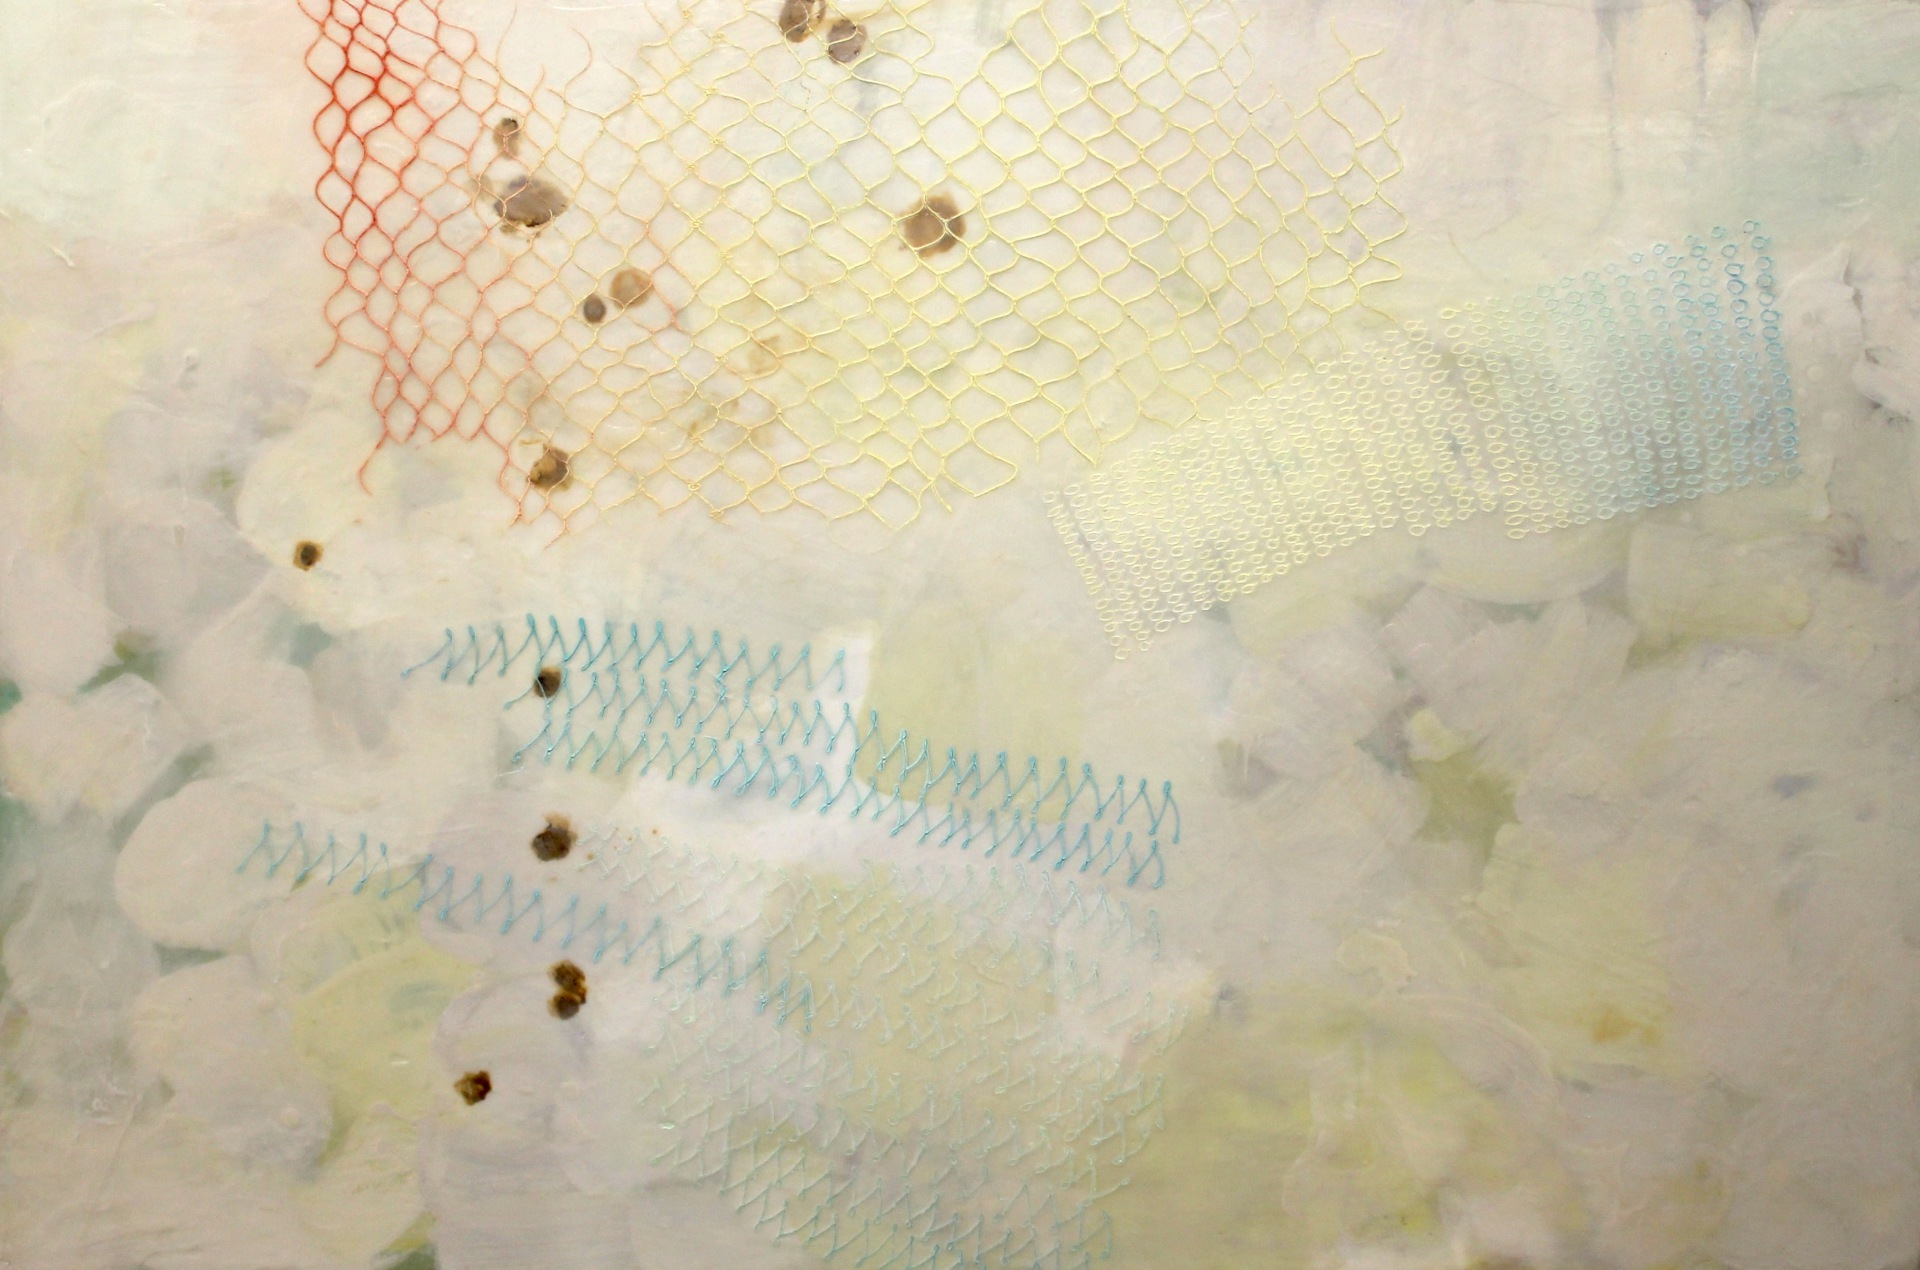 UNTITLED - 24X36 - ENCAUSTIC/PANEL - 2015